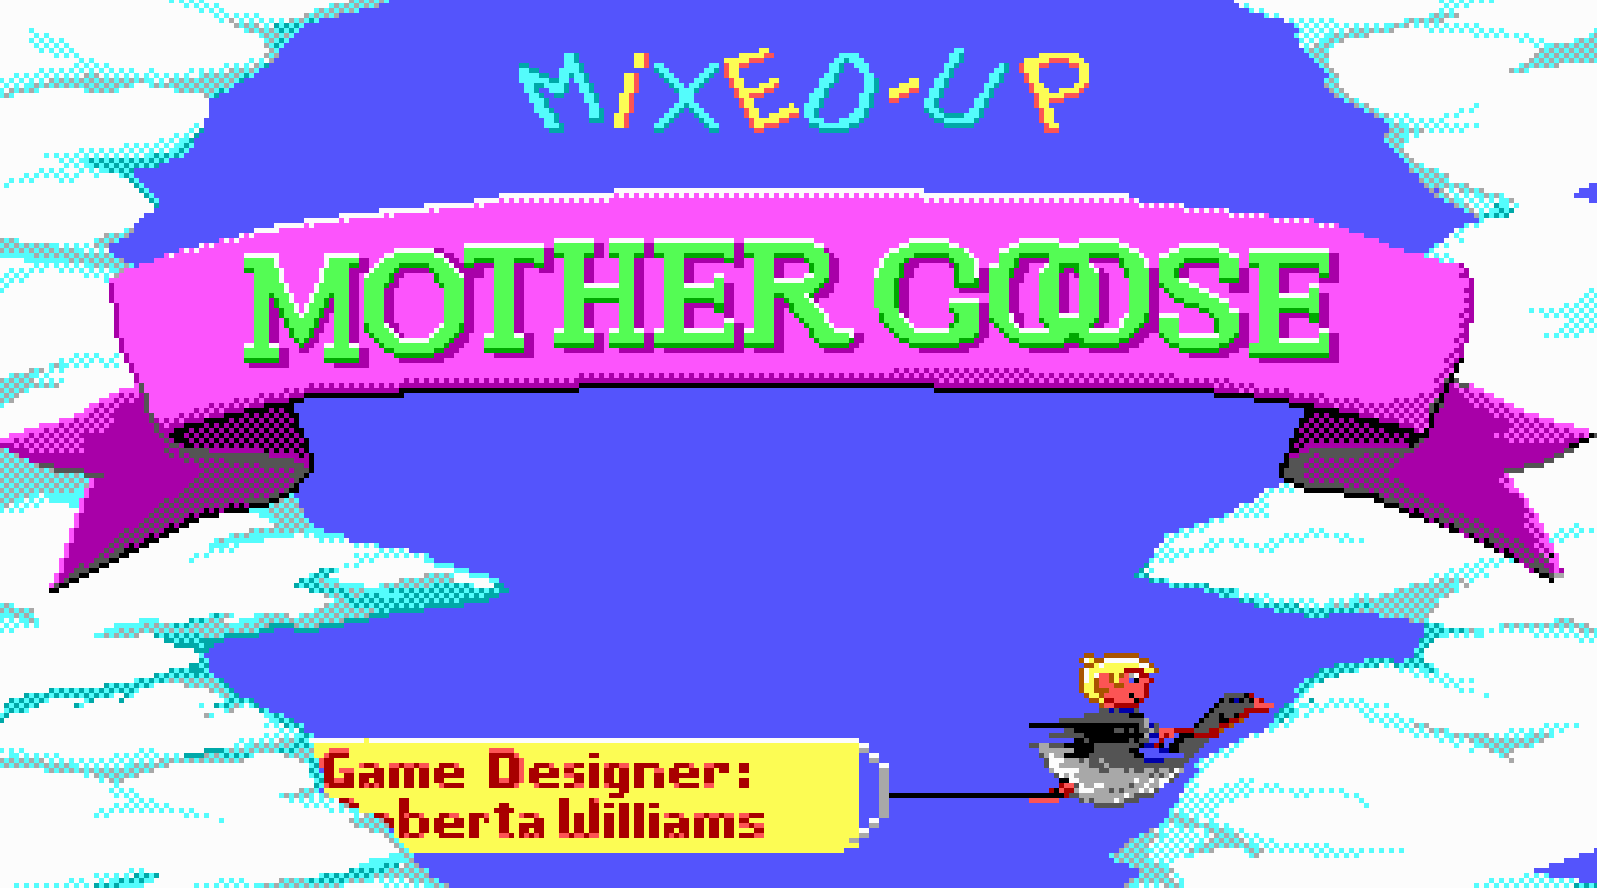 The title screen from Mixed Up Mother Goose, featuring a child riding a flying goose